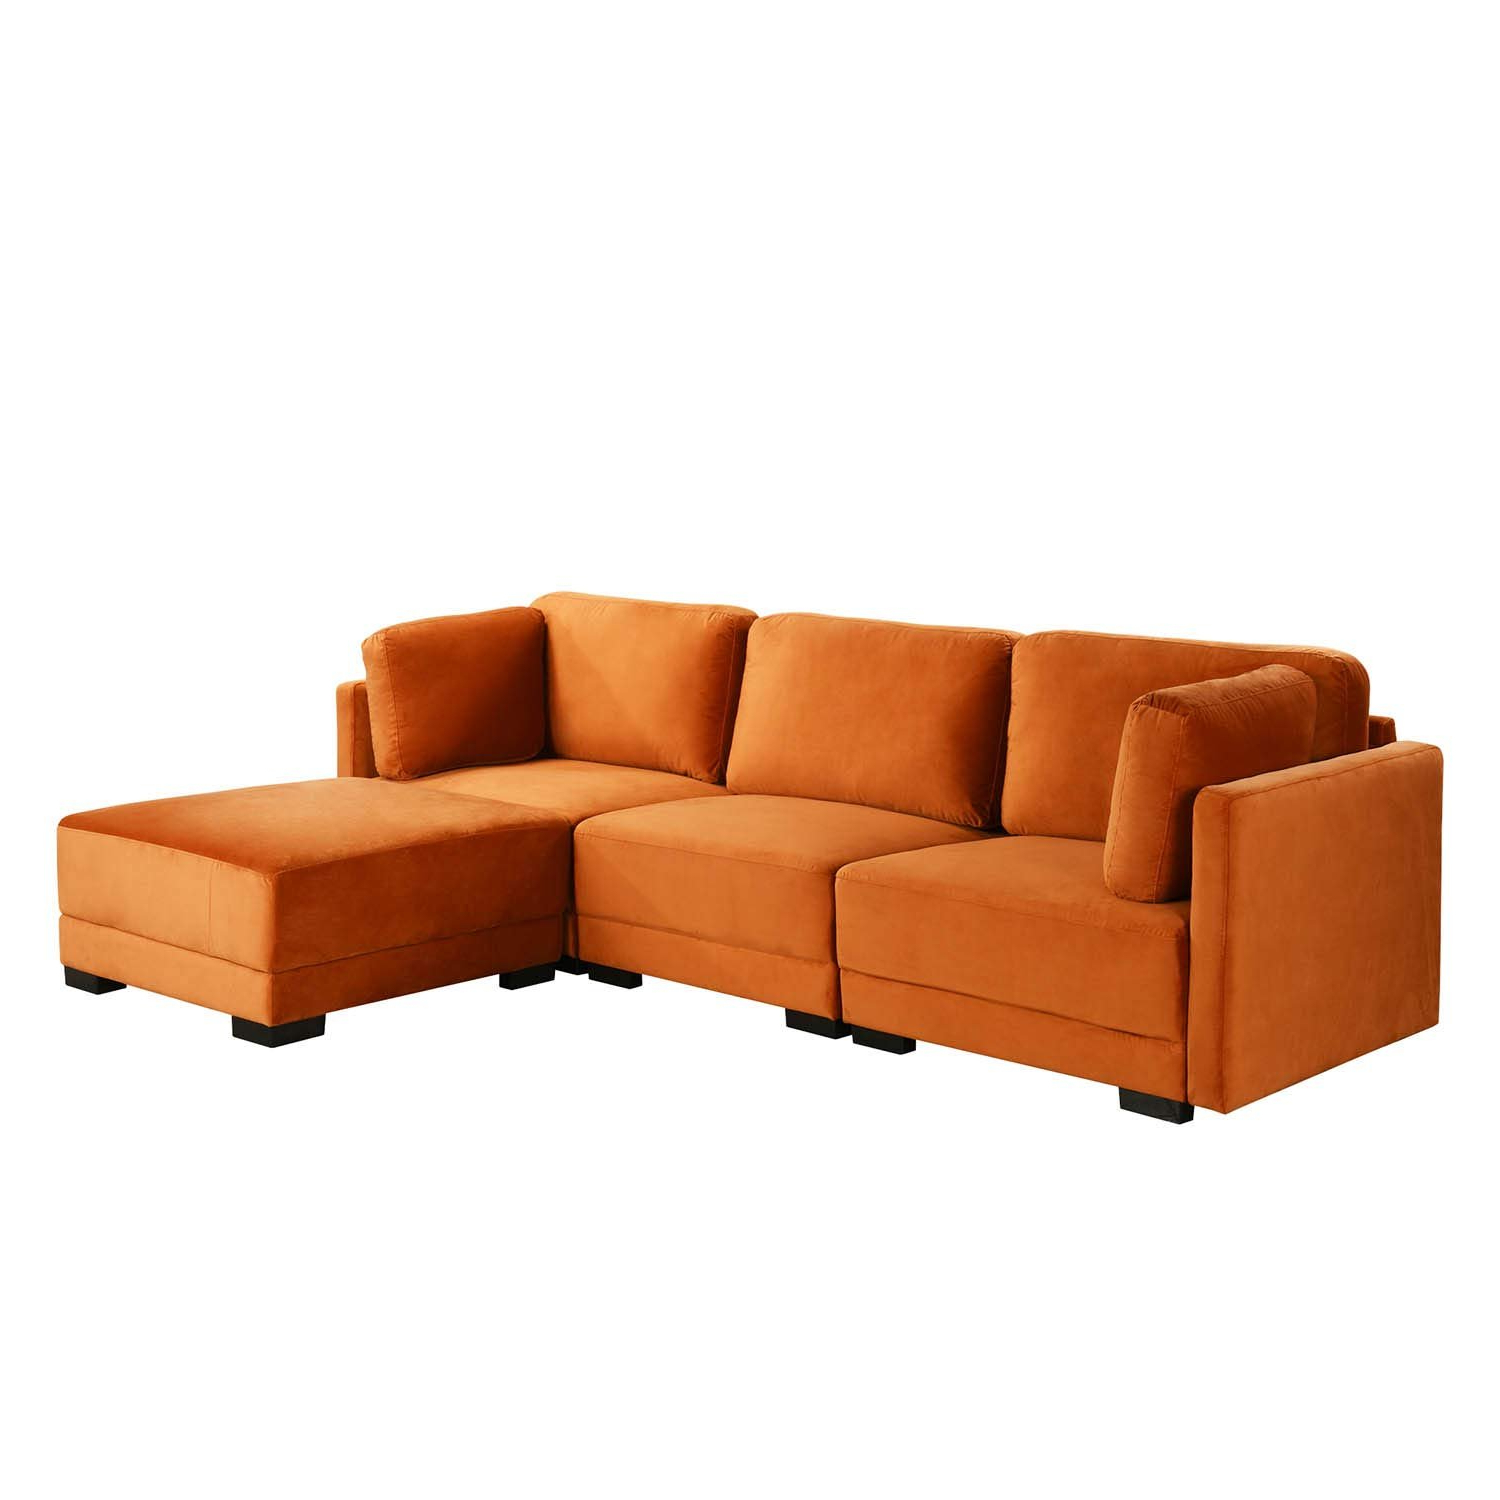 Owego L Shaped Sectional Sofas For Well Known Orange Upholstered Velvet Sectional Sofa, L Shape Modern (View 17 of 20)